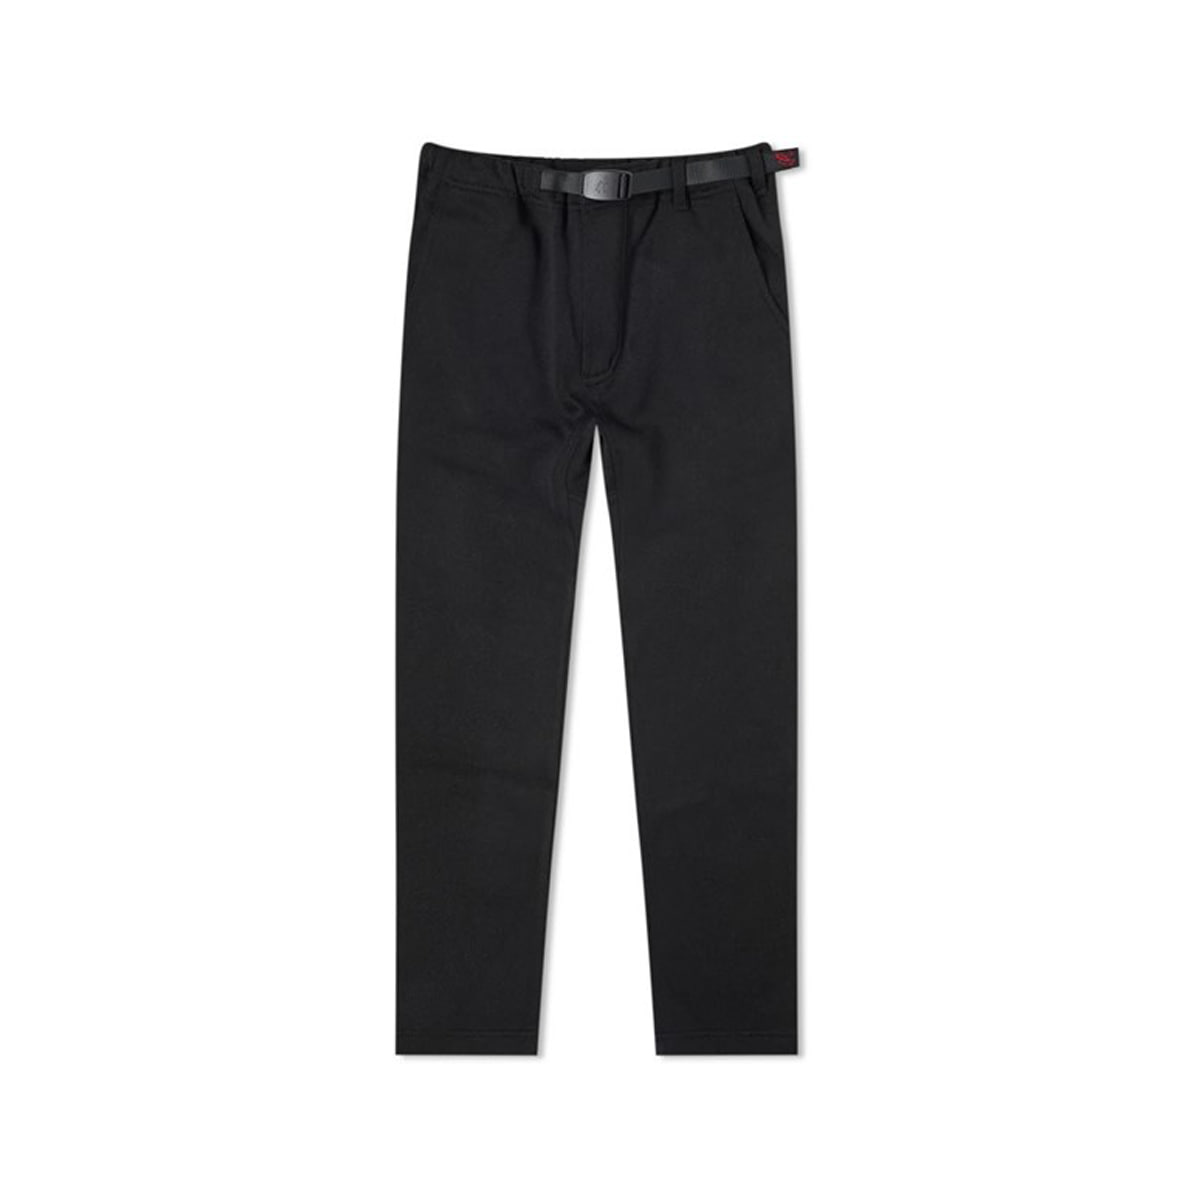 [GRAMICCI] BONDING KNIT FLEECE SLIM PANT 'BLACK'